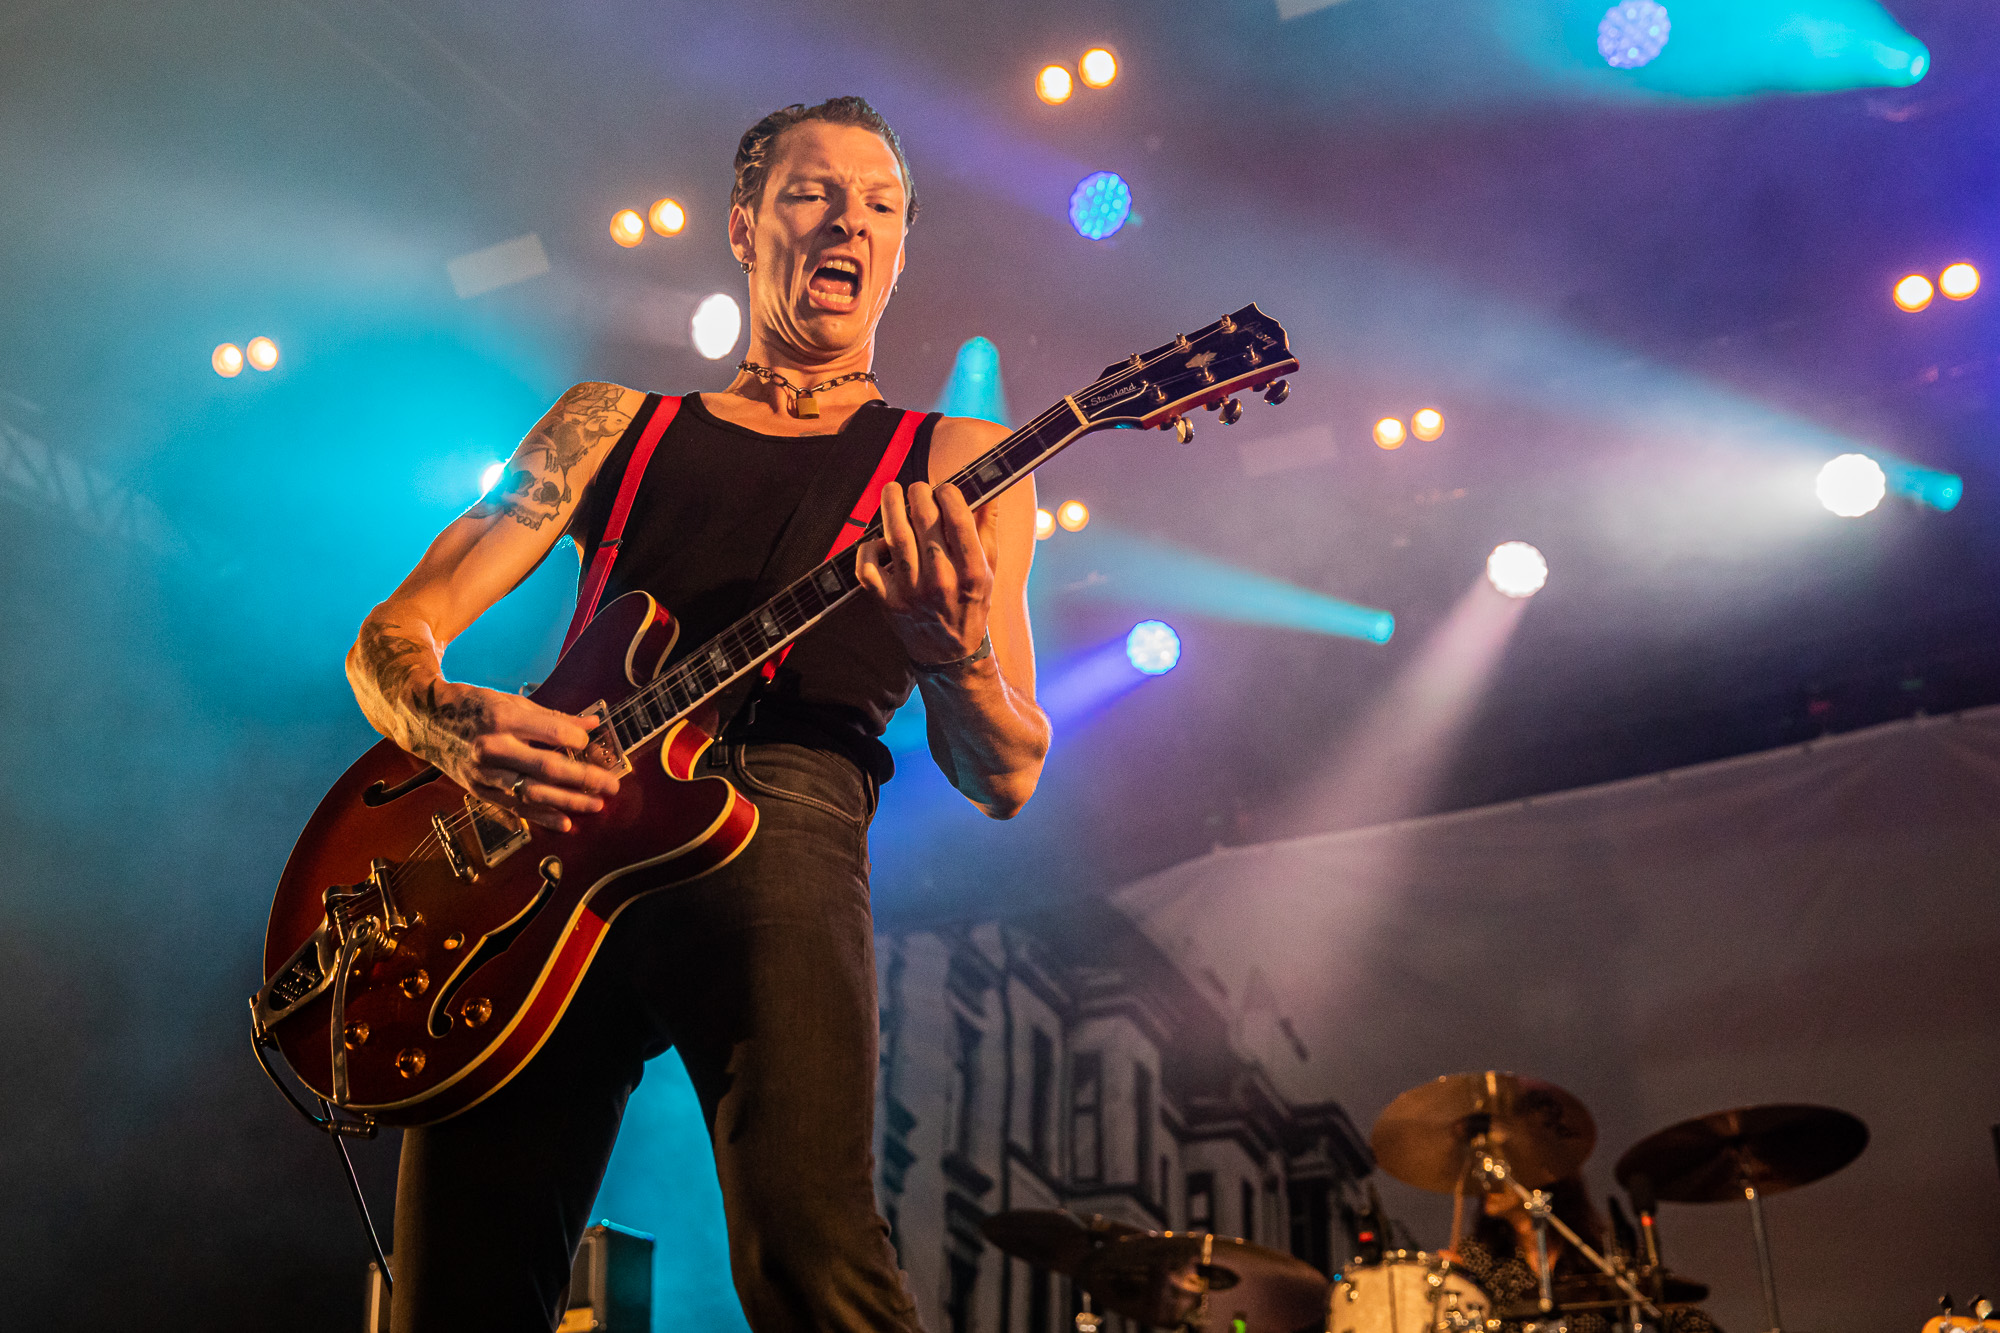 Oslo Ess @ Tons Of Rock 2019